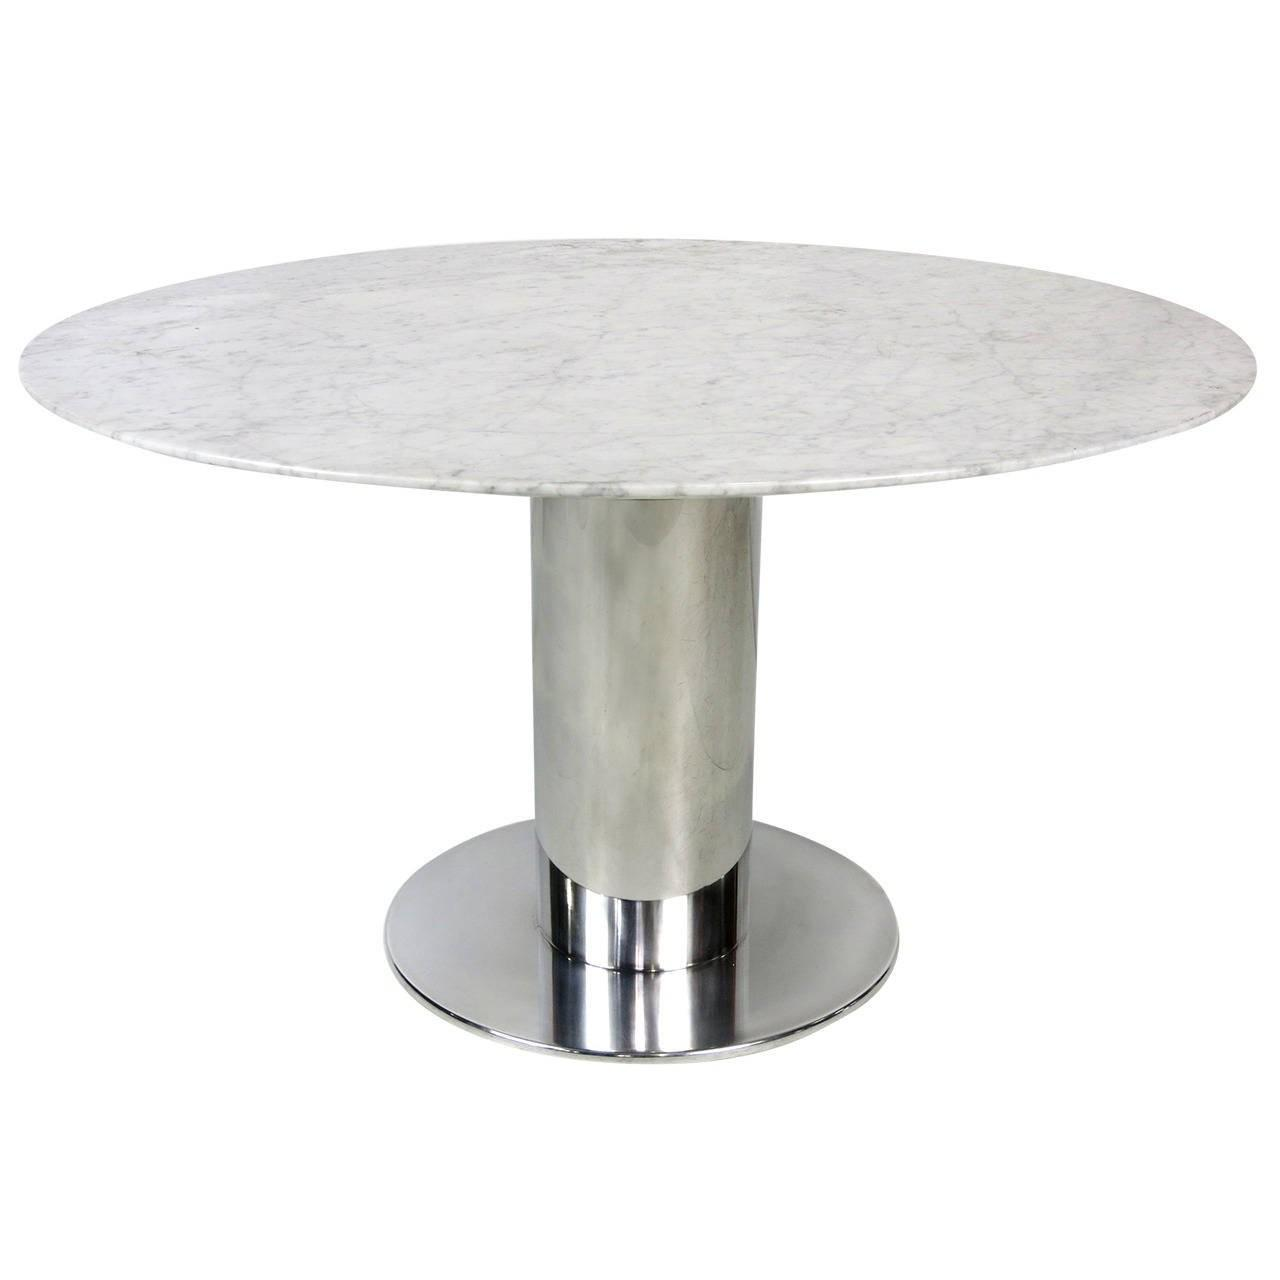 Polished Stainless Steel Dining Table Base Sale 1stdibs